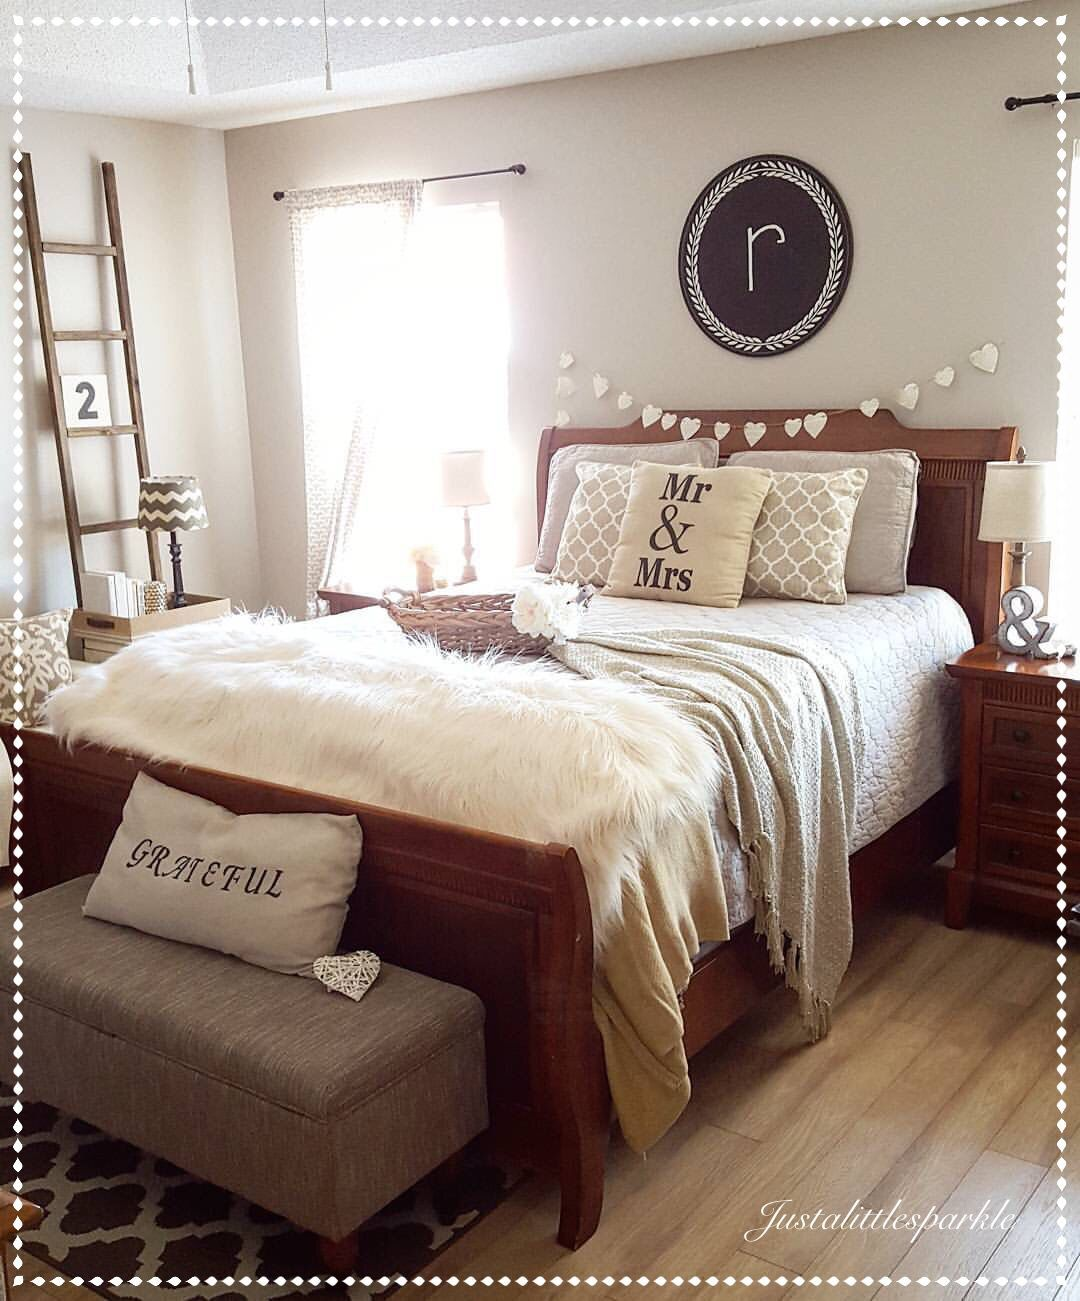 Cozy Rustic Bedroom Ideas: Pin By Jeanette Dietrichs On Mtn House